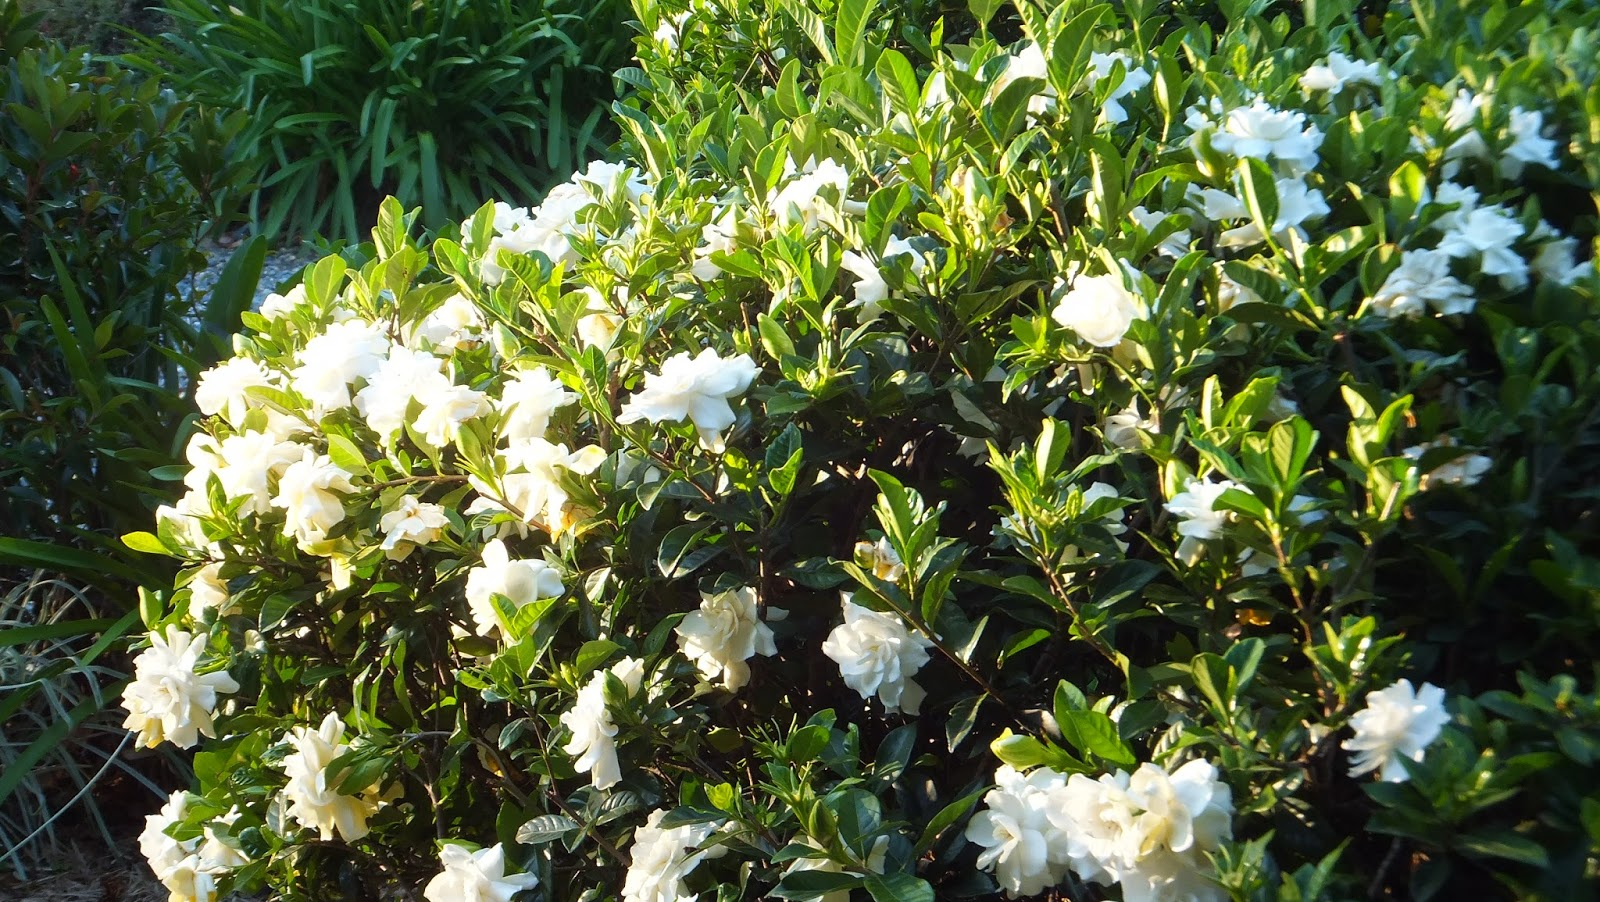 Coffs harbour garden club plants for recycled water systems for White flowering bush